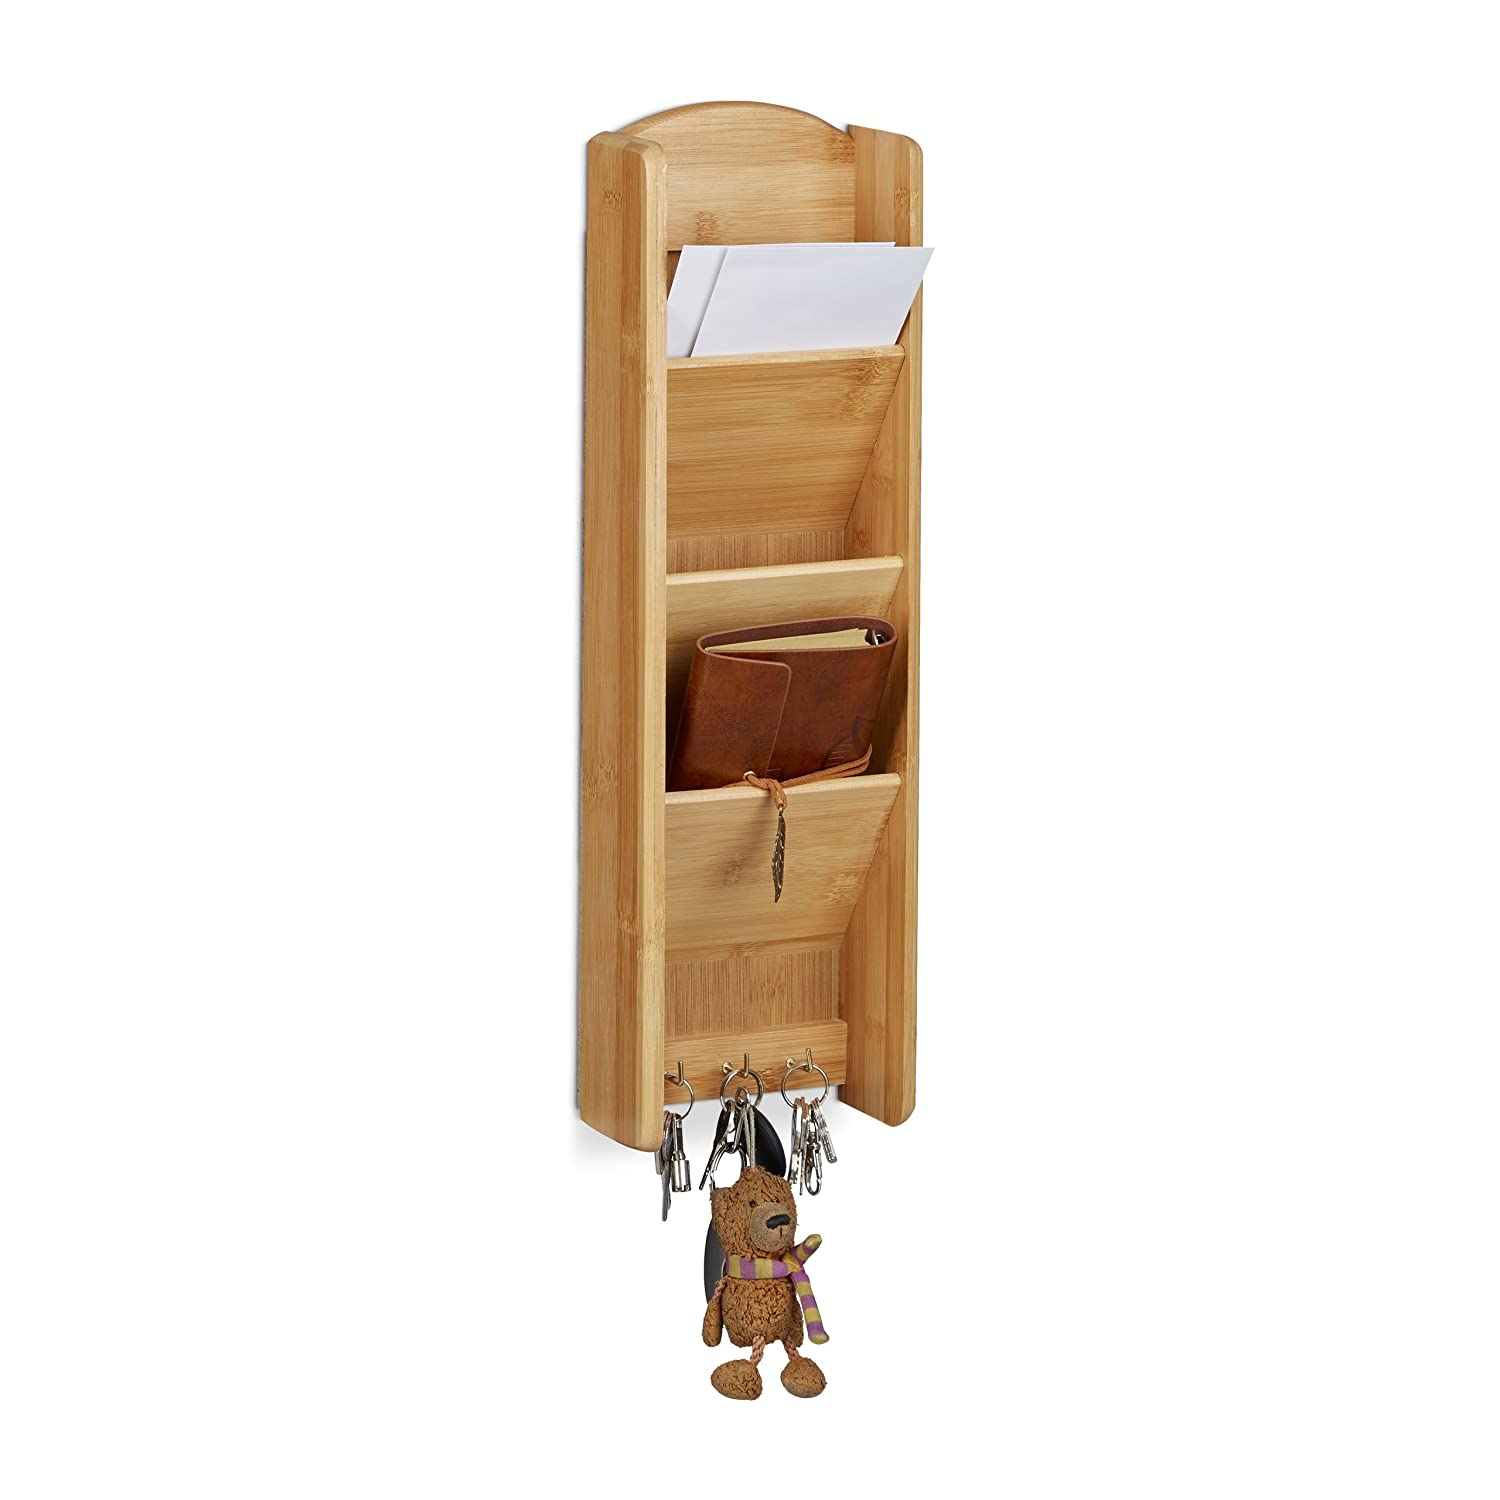 Relaxdays Bamboo Key Board with Shelf, 3 Compartments, 3 Key Hooks, Wall Organizer, Size: 7.5 x 15 x 49.5 cm, Wood, Natural Brown 10020249